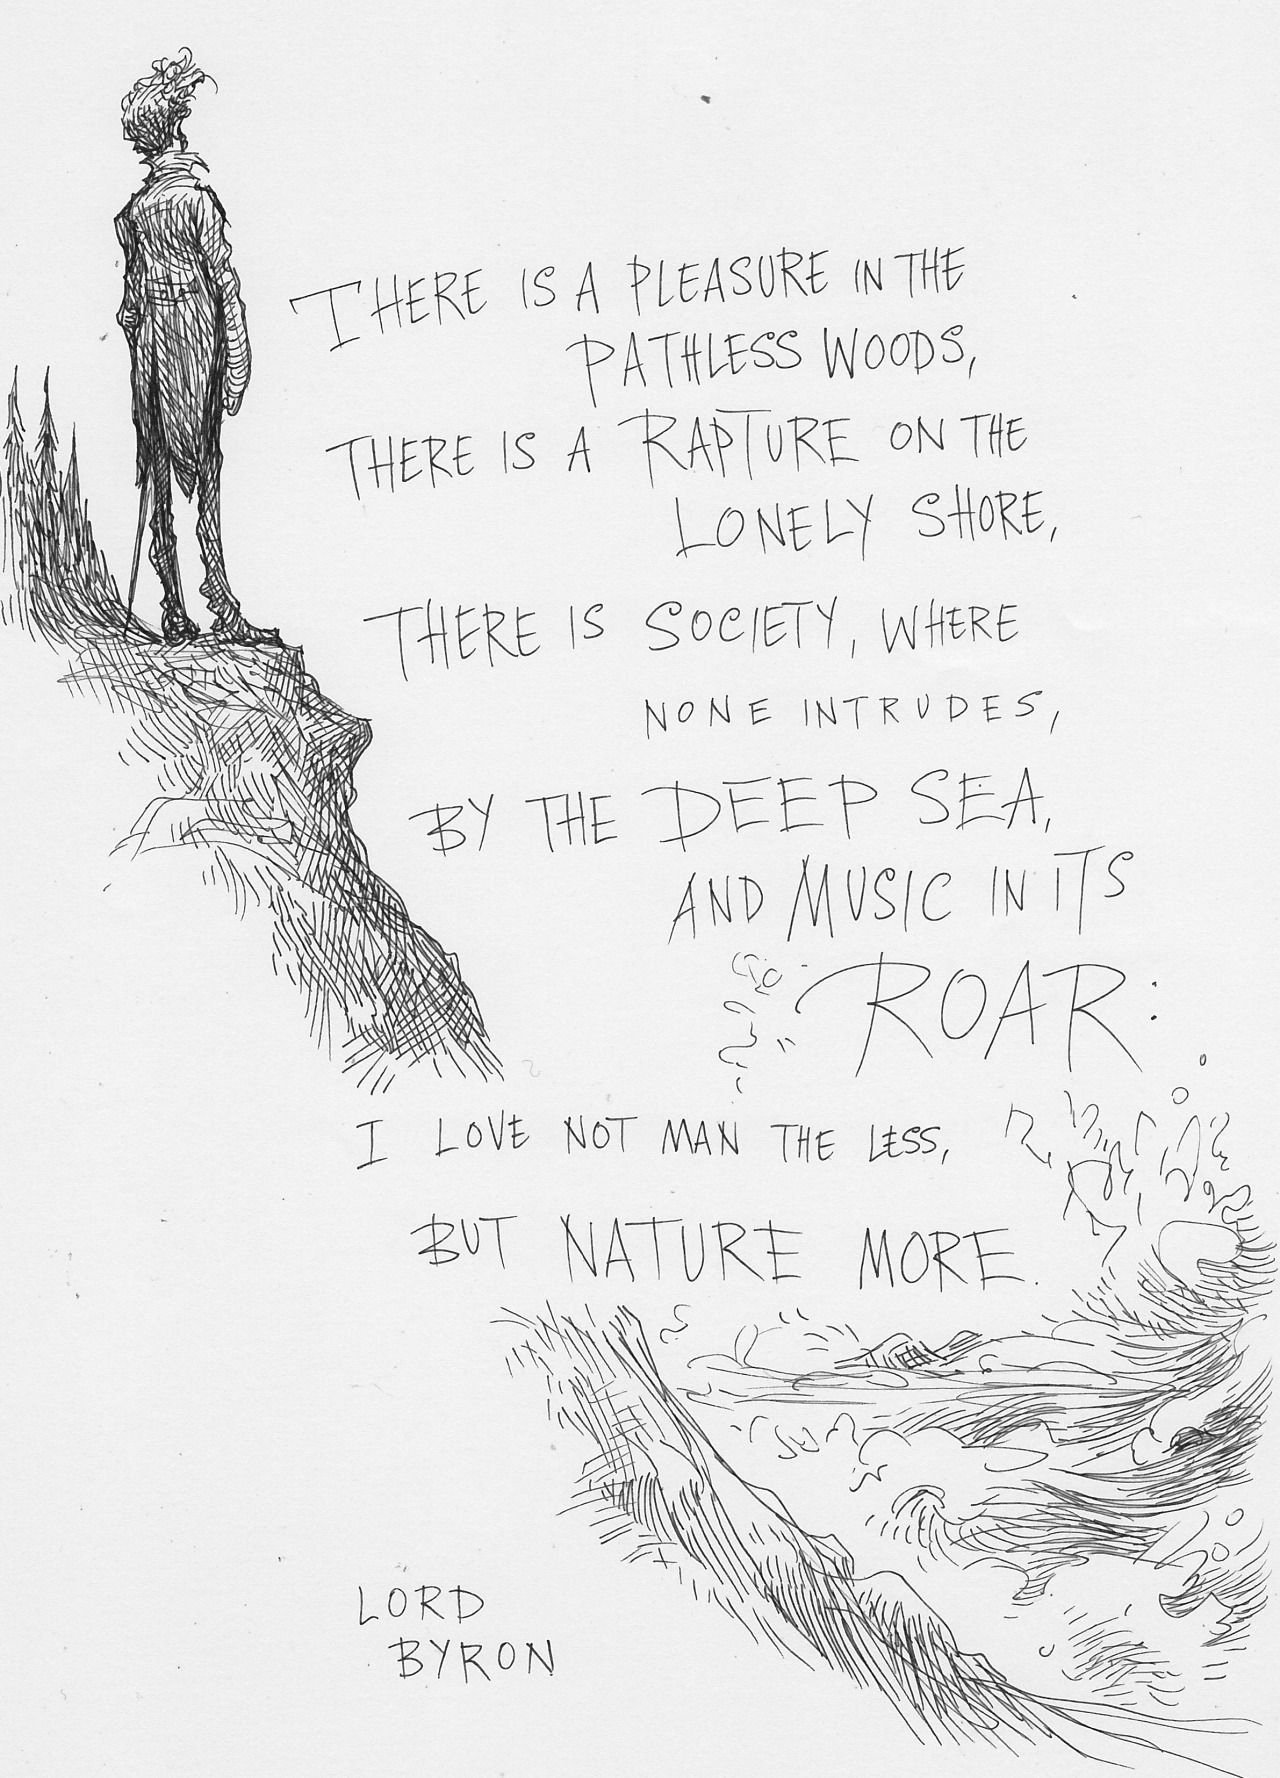 Love Poems Of Great Men Inspirational Lord byron Poem by Chris Riddell